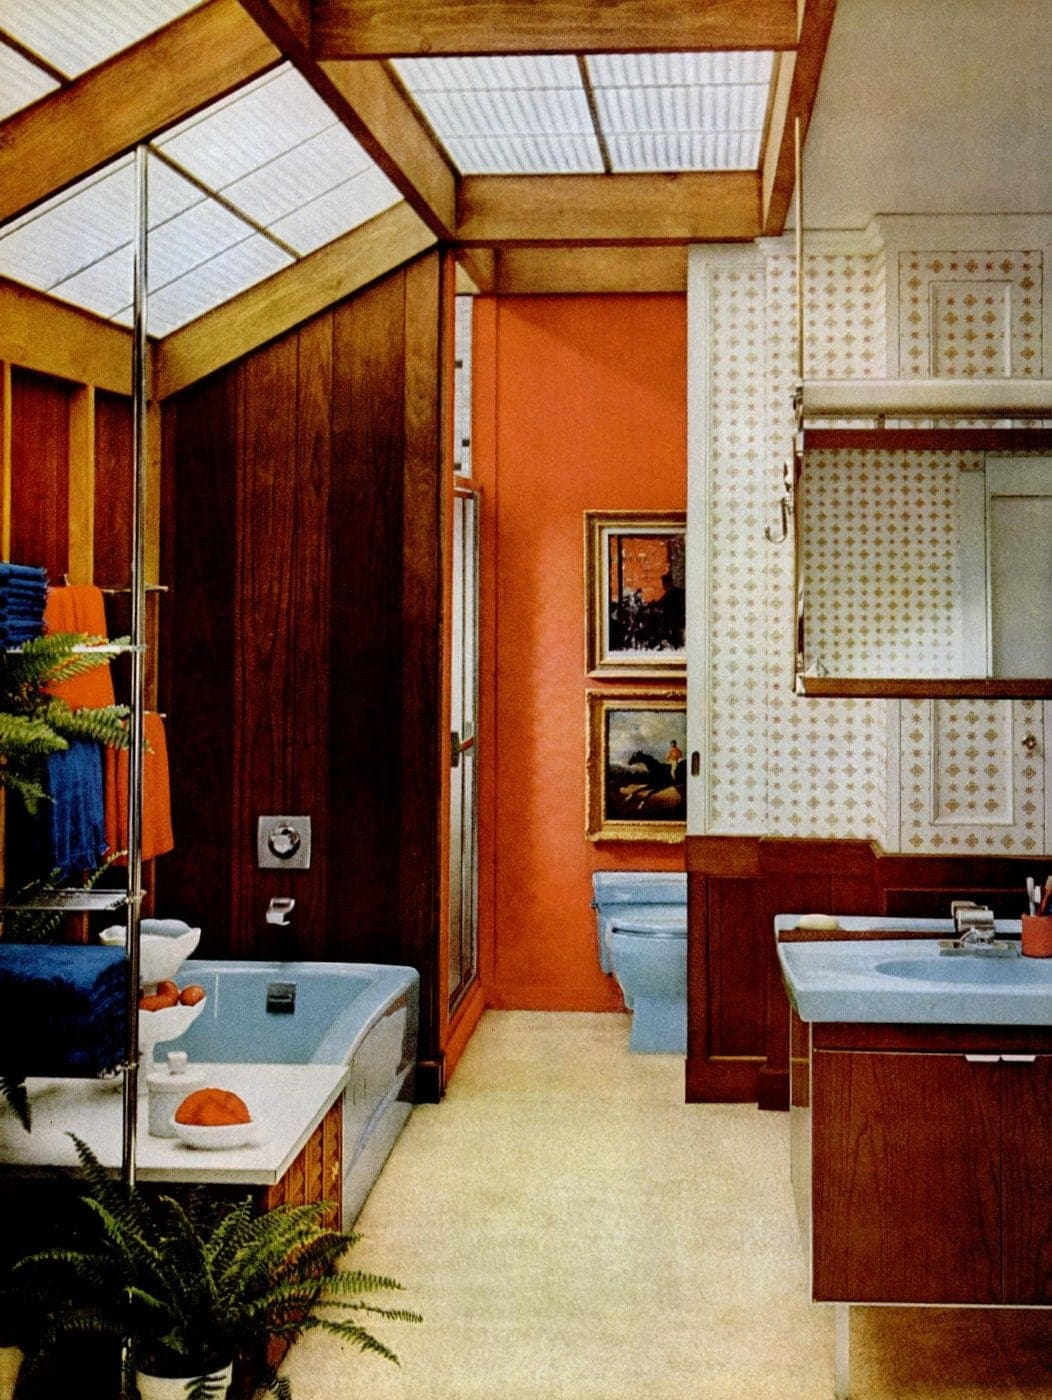 Wood paneling plus wallpaper, with vintage '60s bathtub from 1963